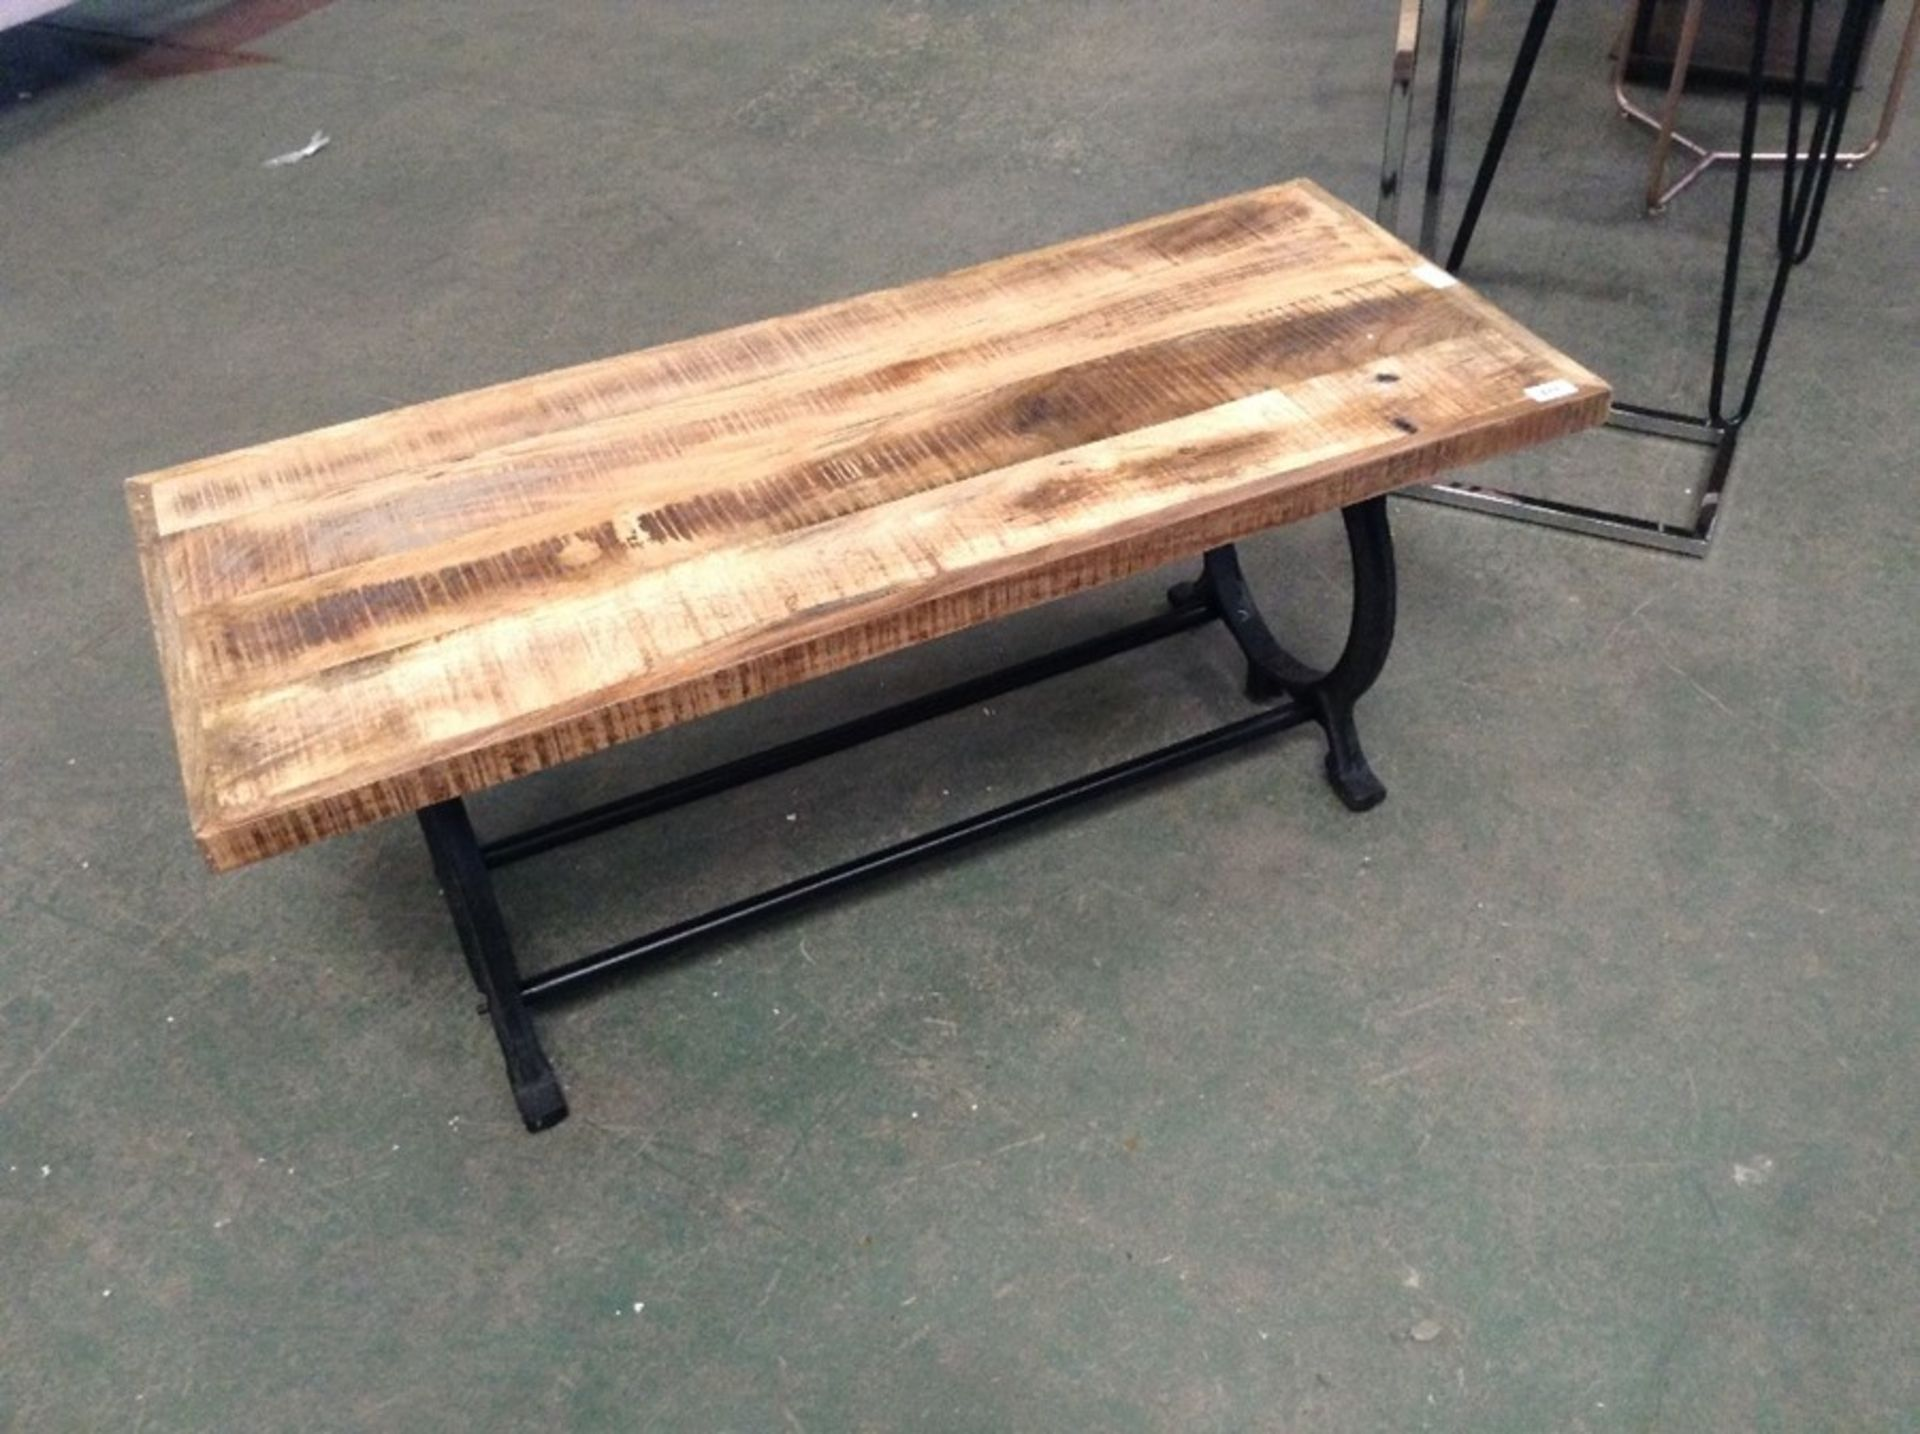 Lot 611 - Borough Wharf,Dennison Wood Bench RRP -£119.99 (H1